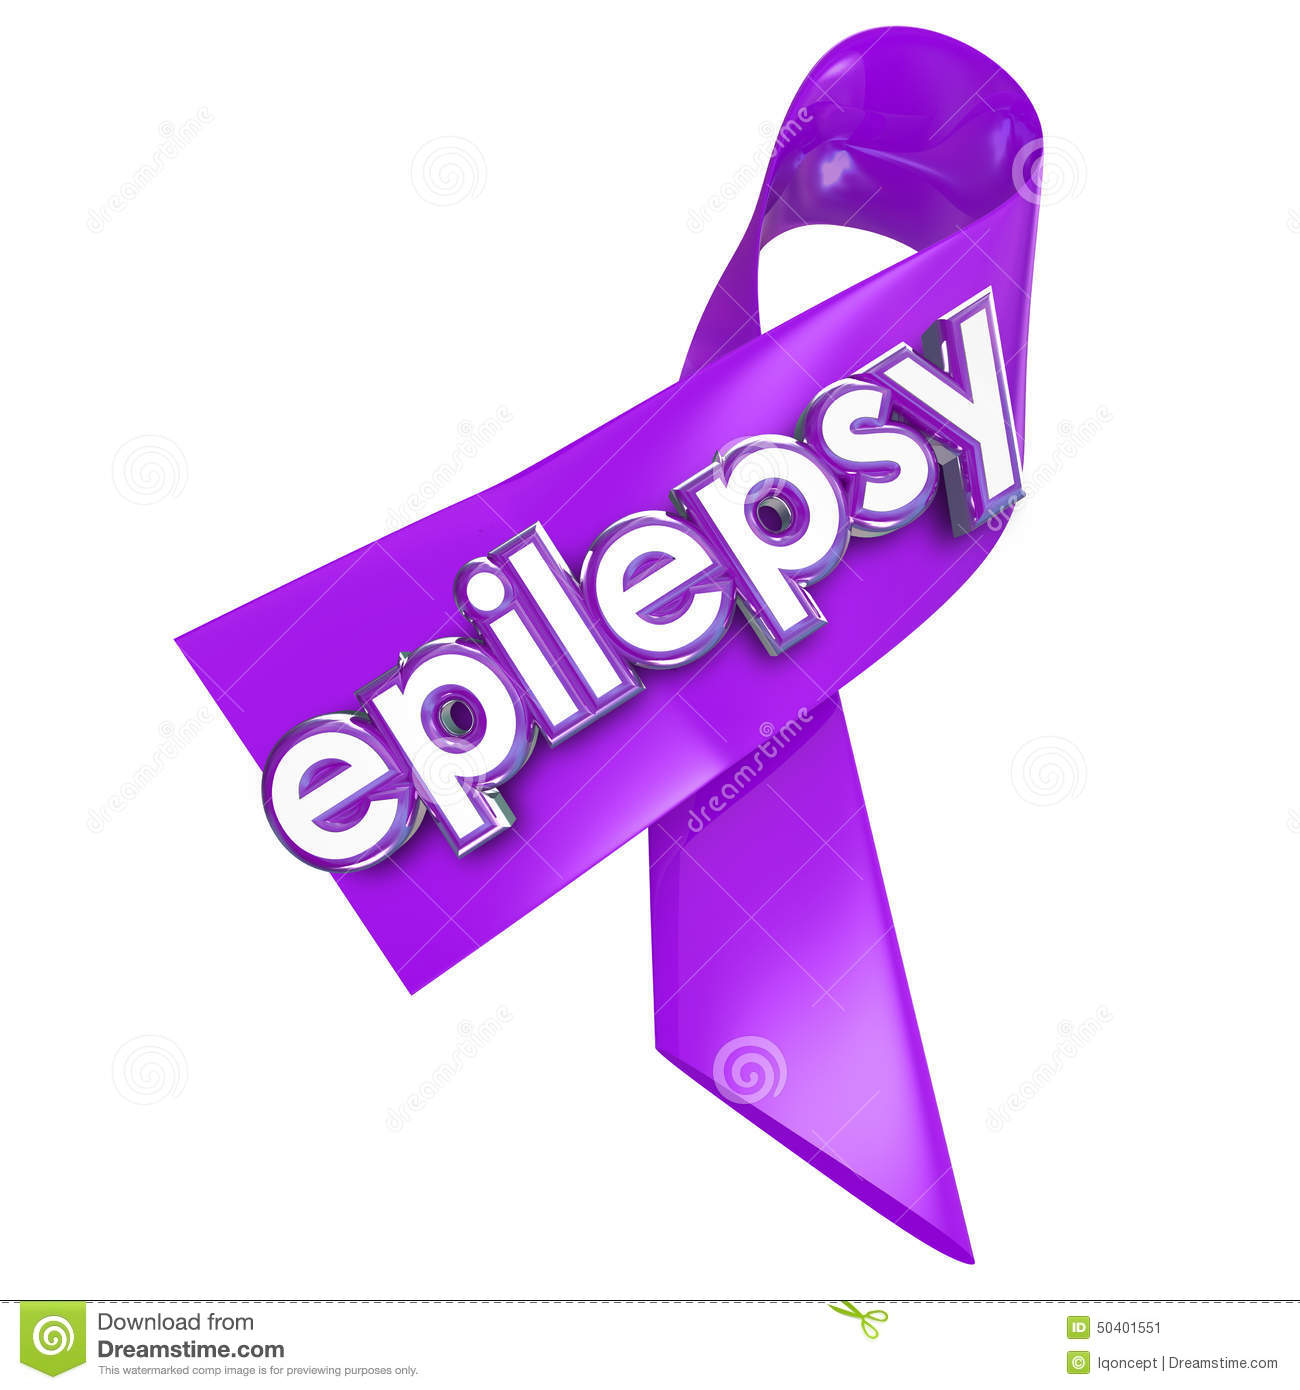 Epilepsy Stock Illustrations.